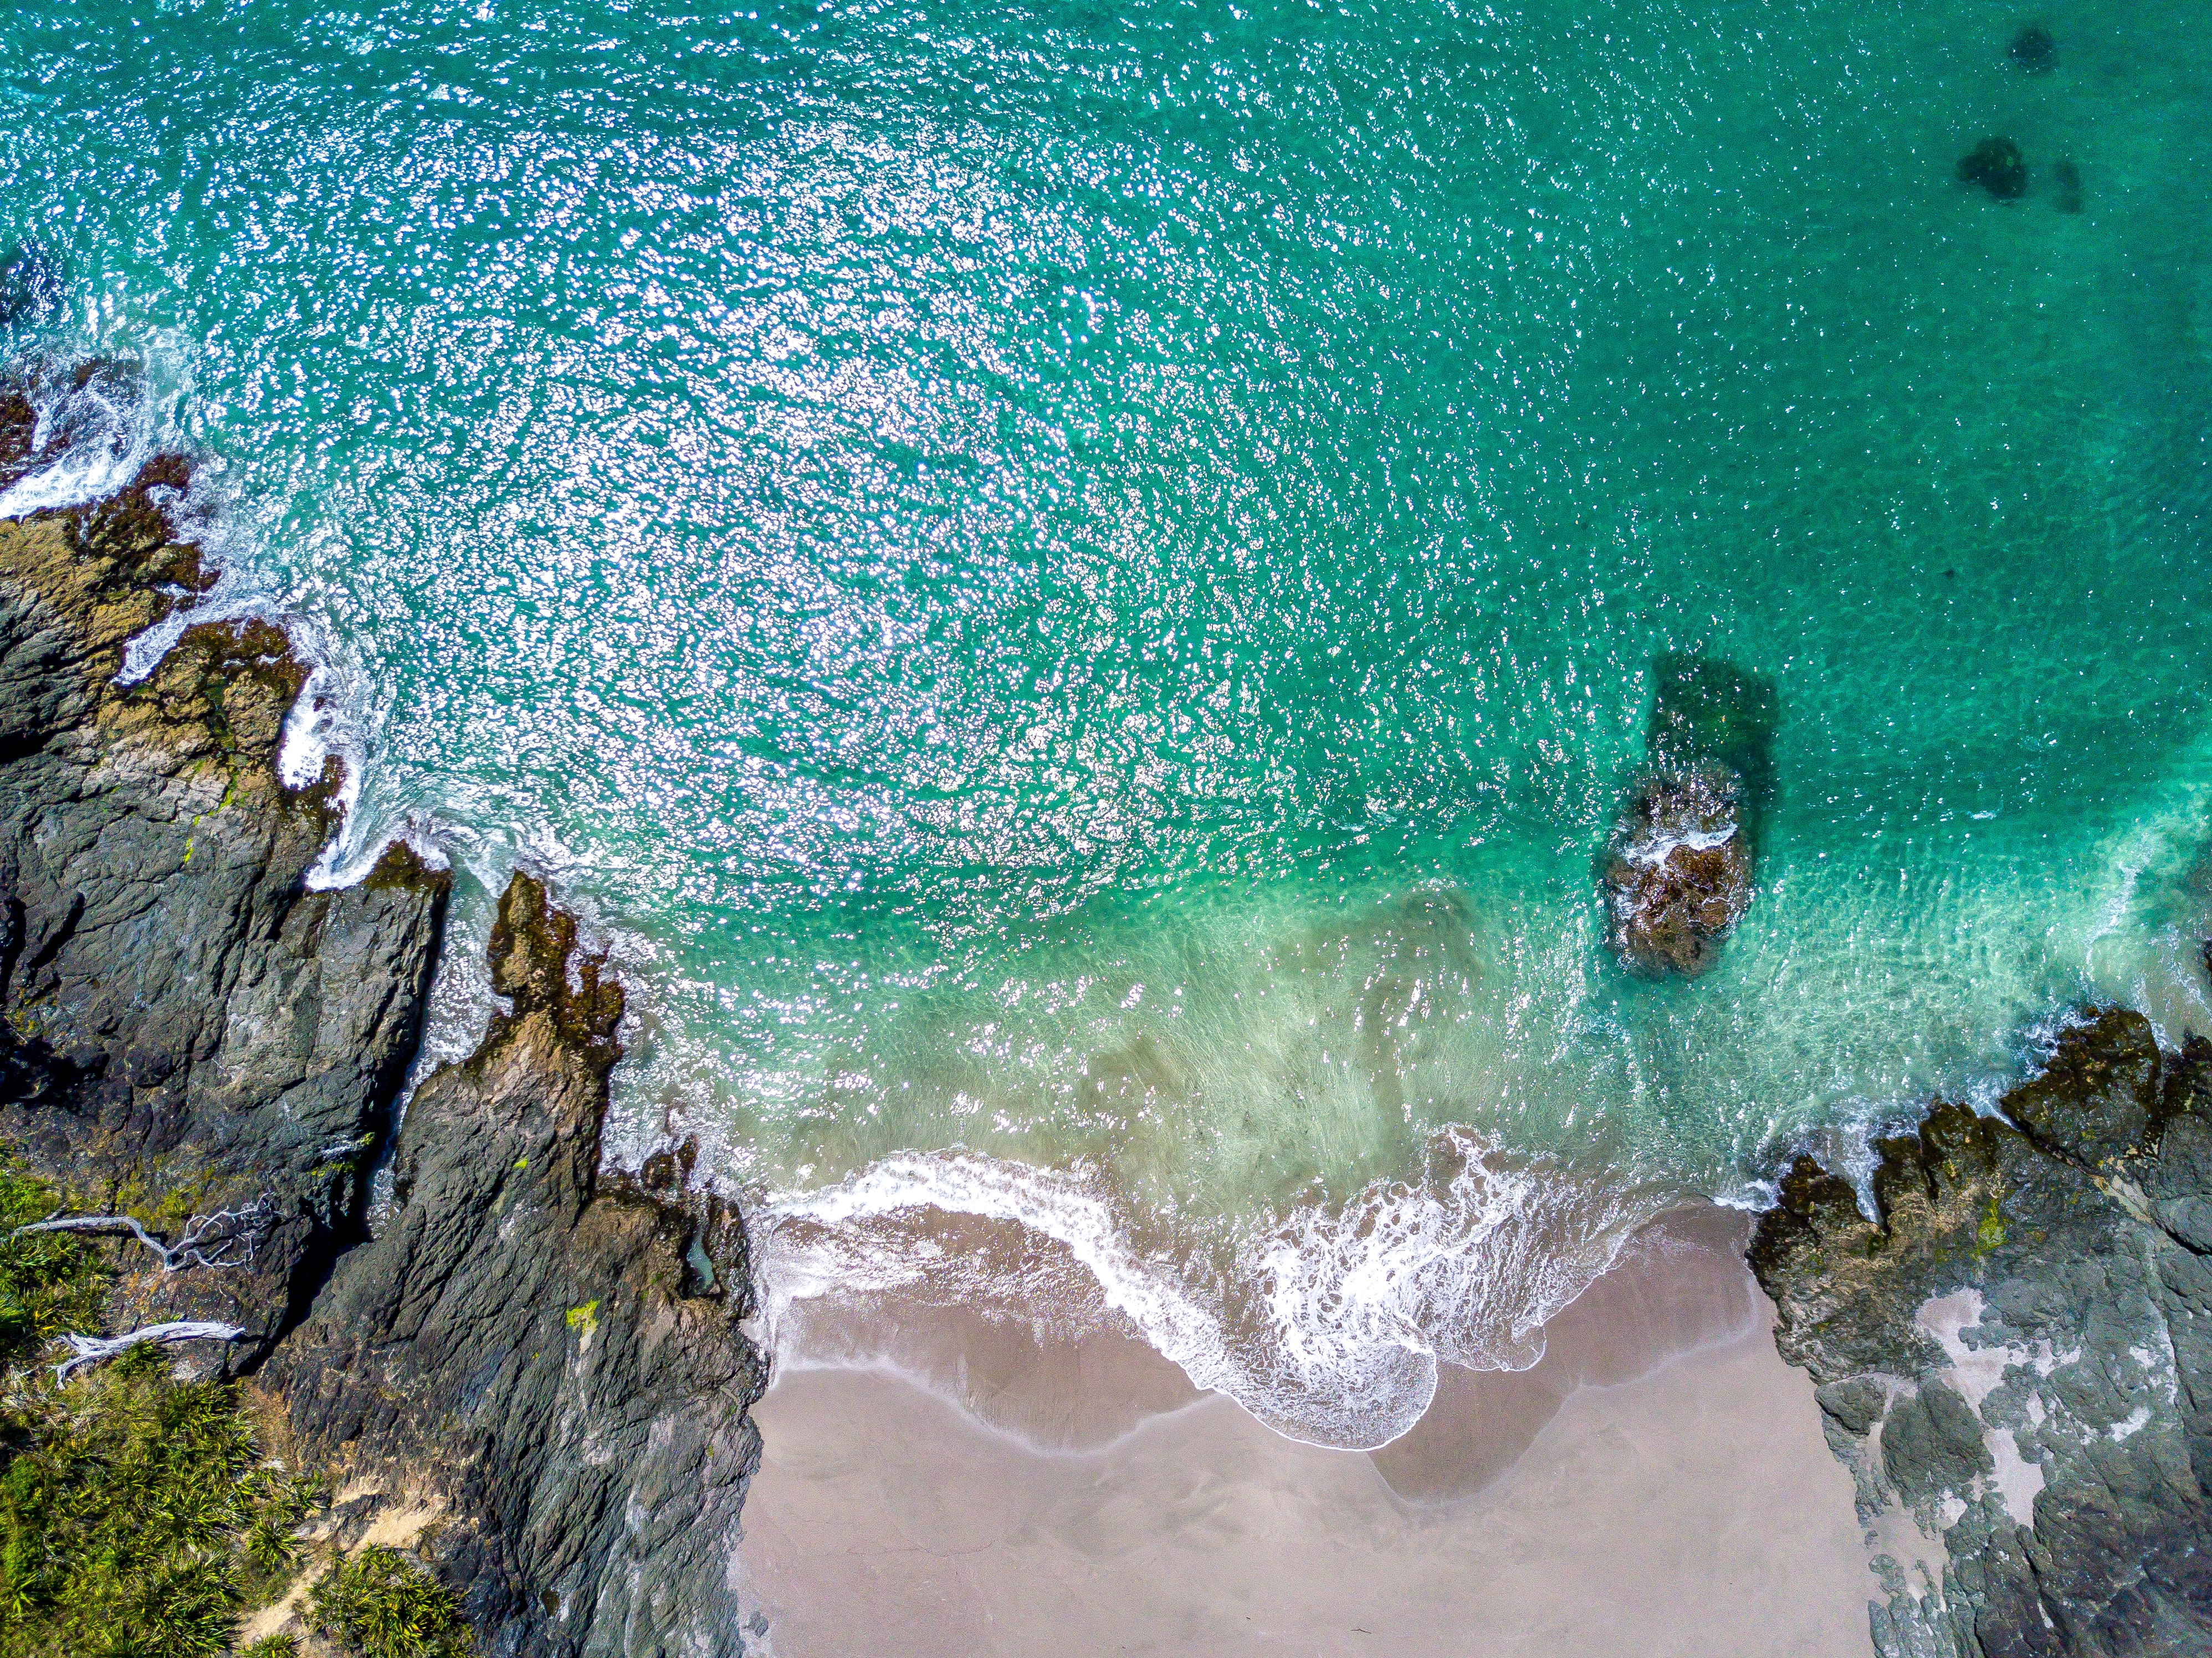 Drone view of an ocean washing on sand shore between rocks